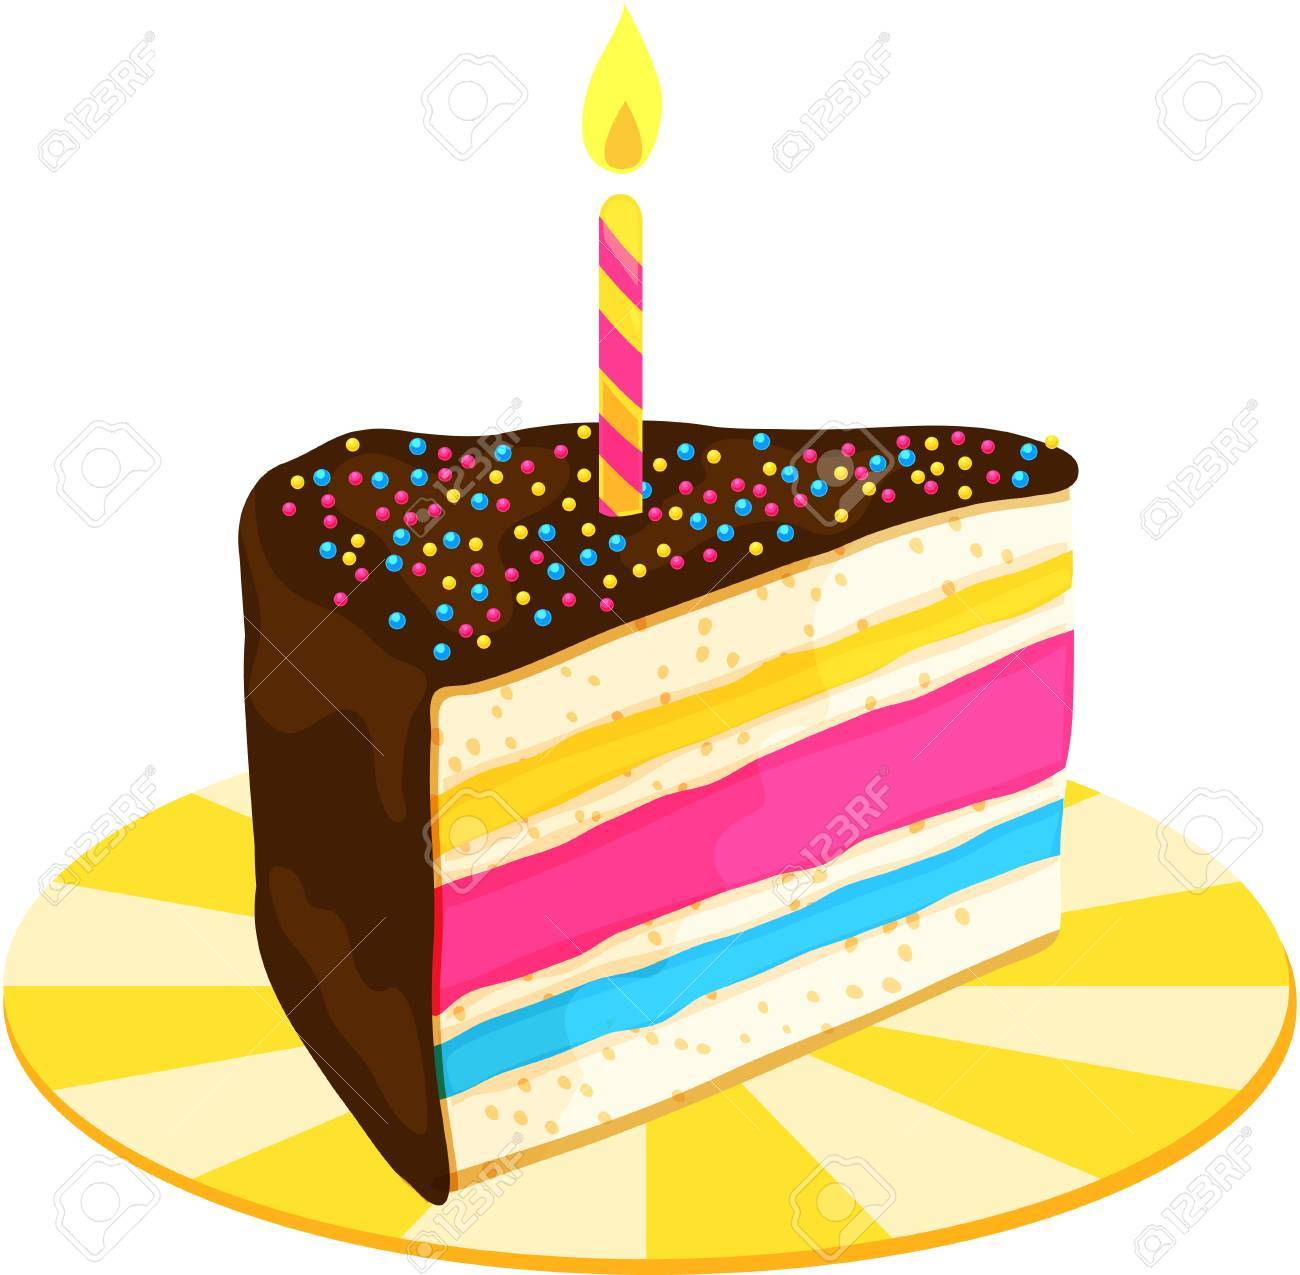 Outstanding Birthday Cake Slice Clip Art The Cake Boutique Personalised Birthday Cards Akebfashionlily Jamesorg